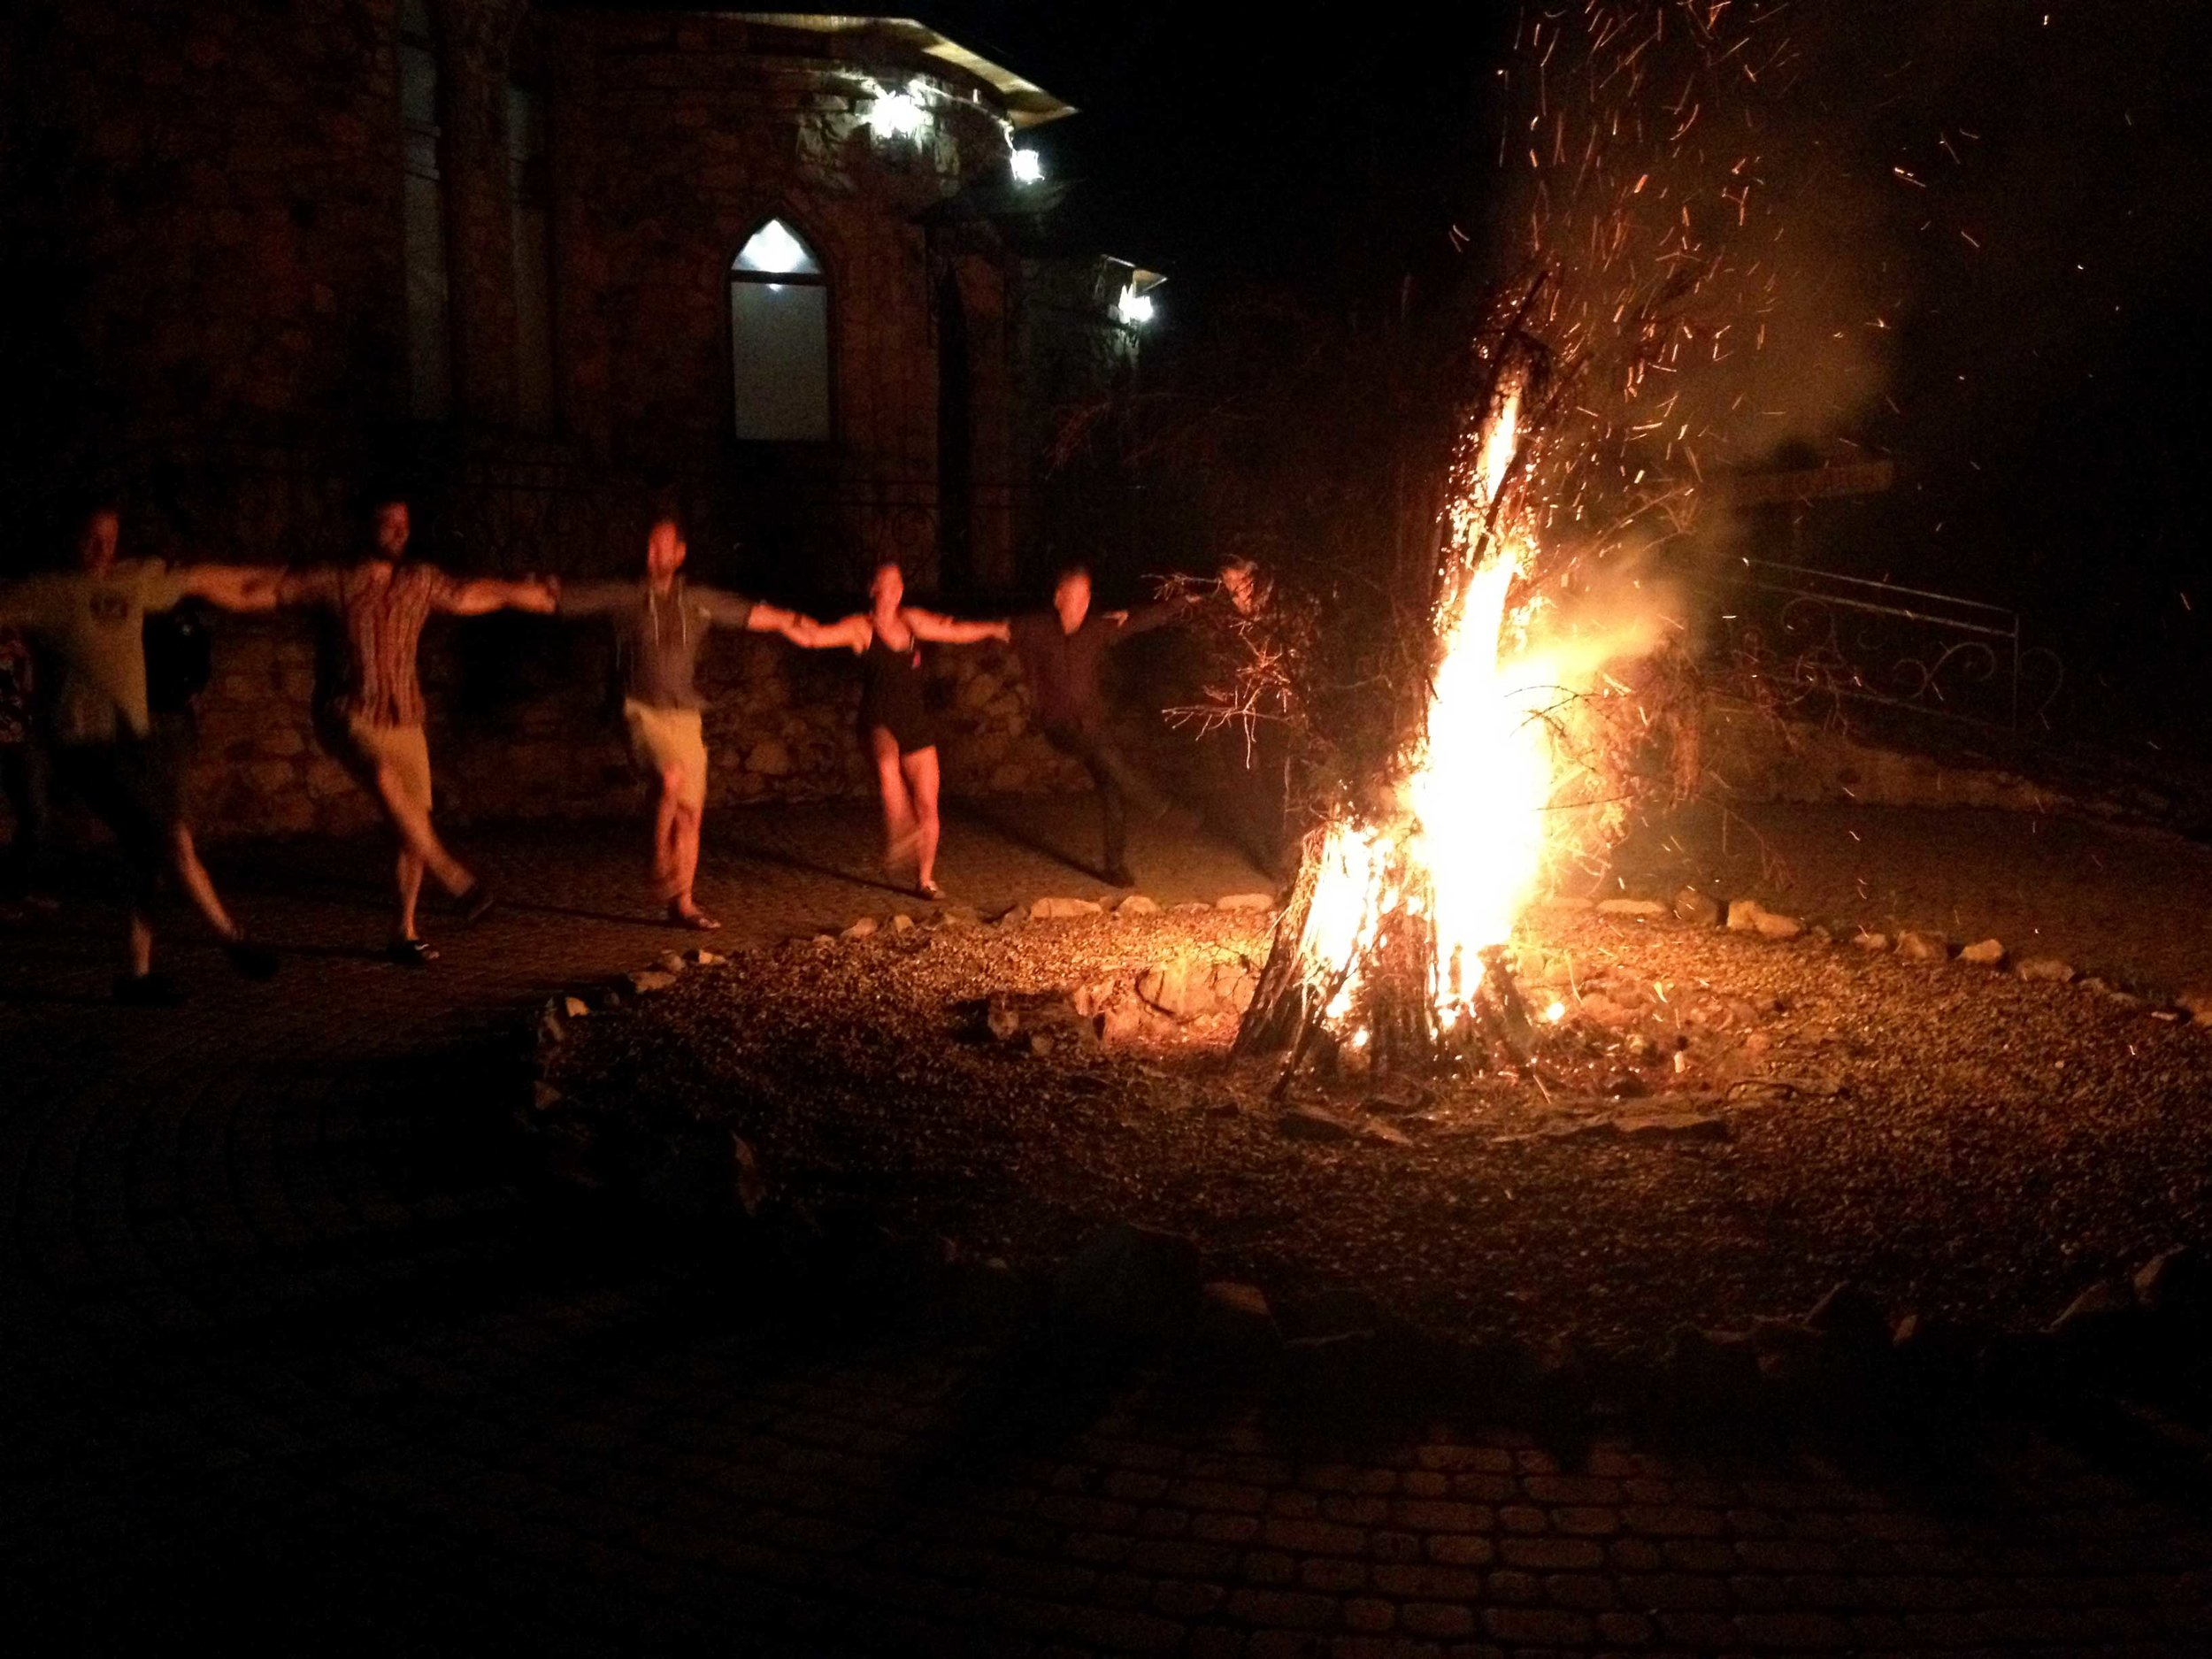 Troyanda, along with some friends, fittingly danced Arkan in the Carpathian Mountains.